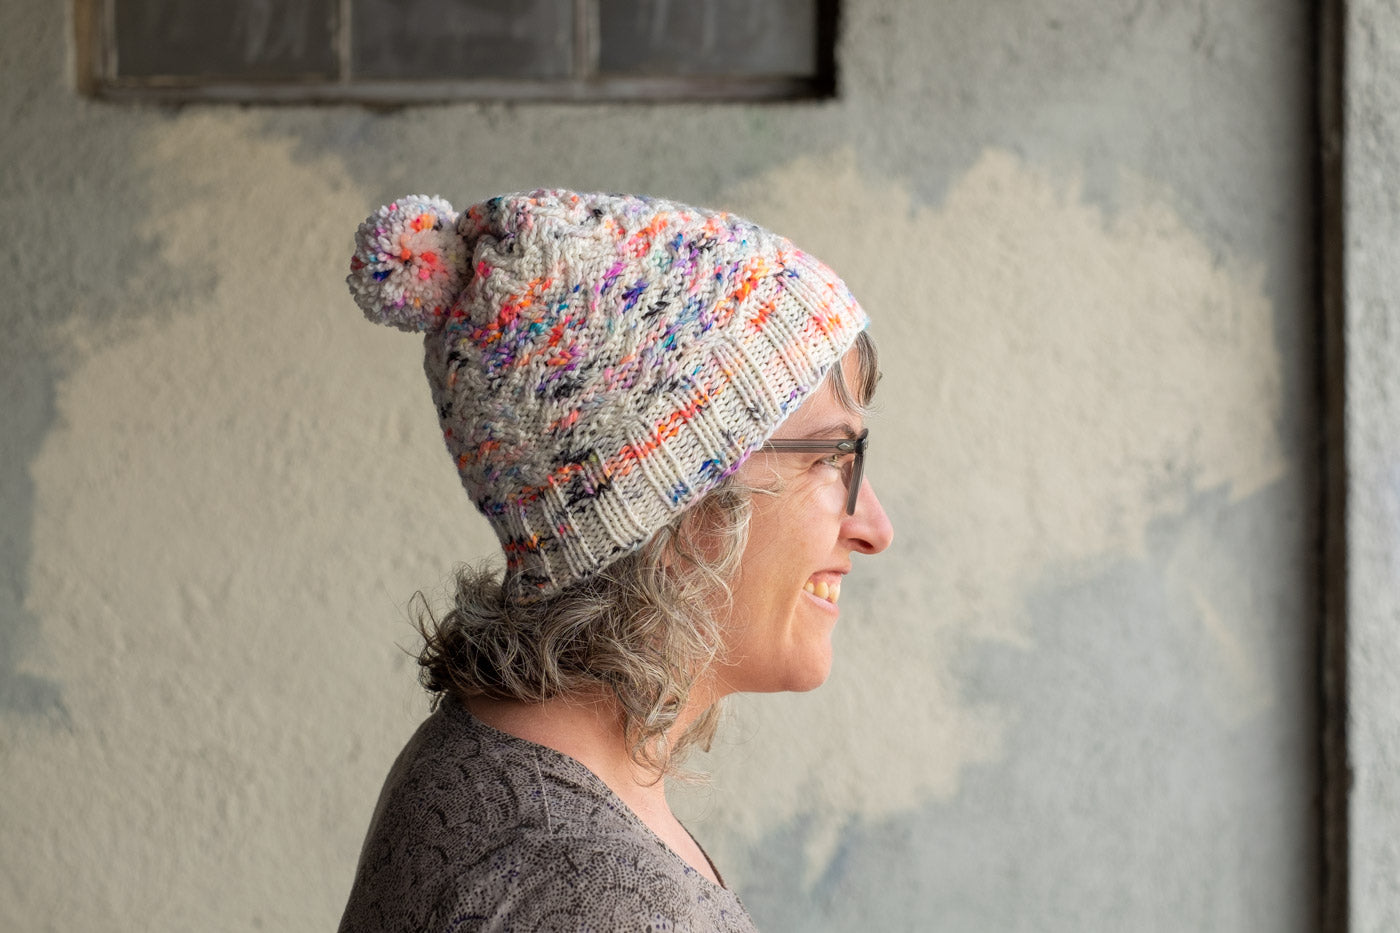 Side view closeup of Jaime in her handknit hat, textured stitches in white yarn speckled with coral, purple and blue. There is a pom-pom on top made from the same yarn.